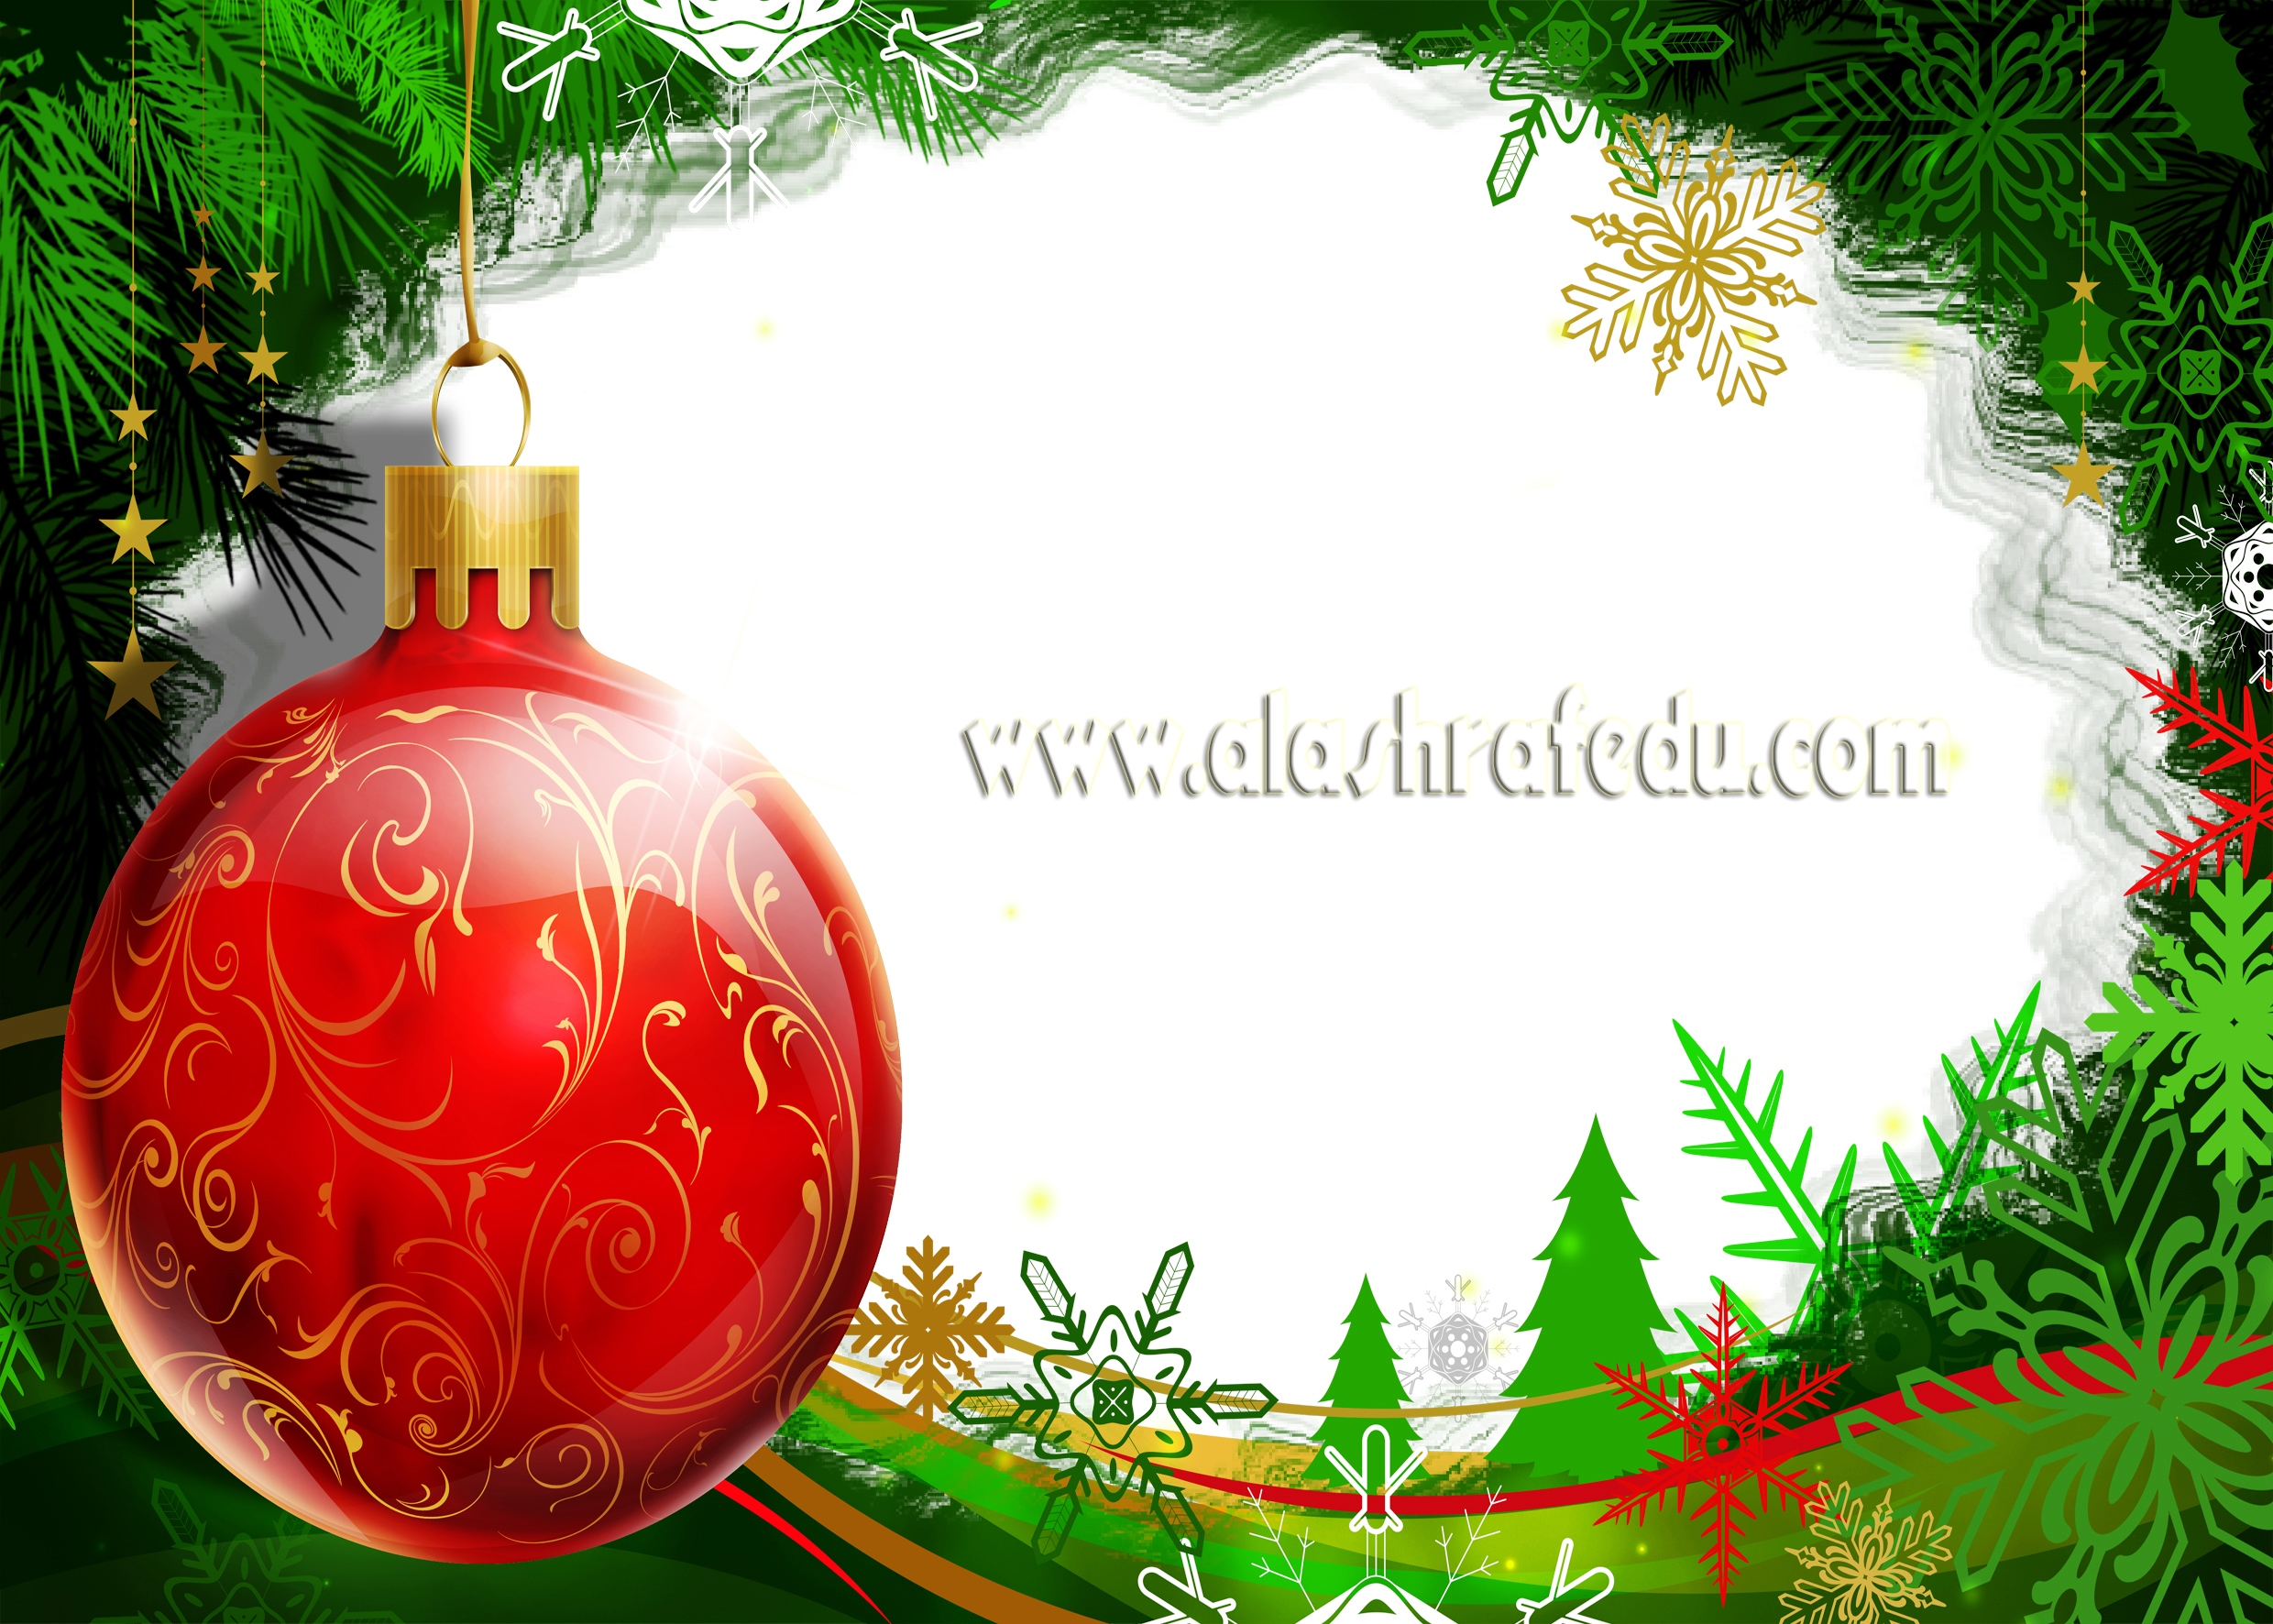 Christmas Transparent Frame With Christmas www.alashrafedu.com1